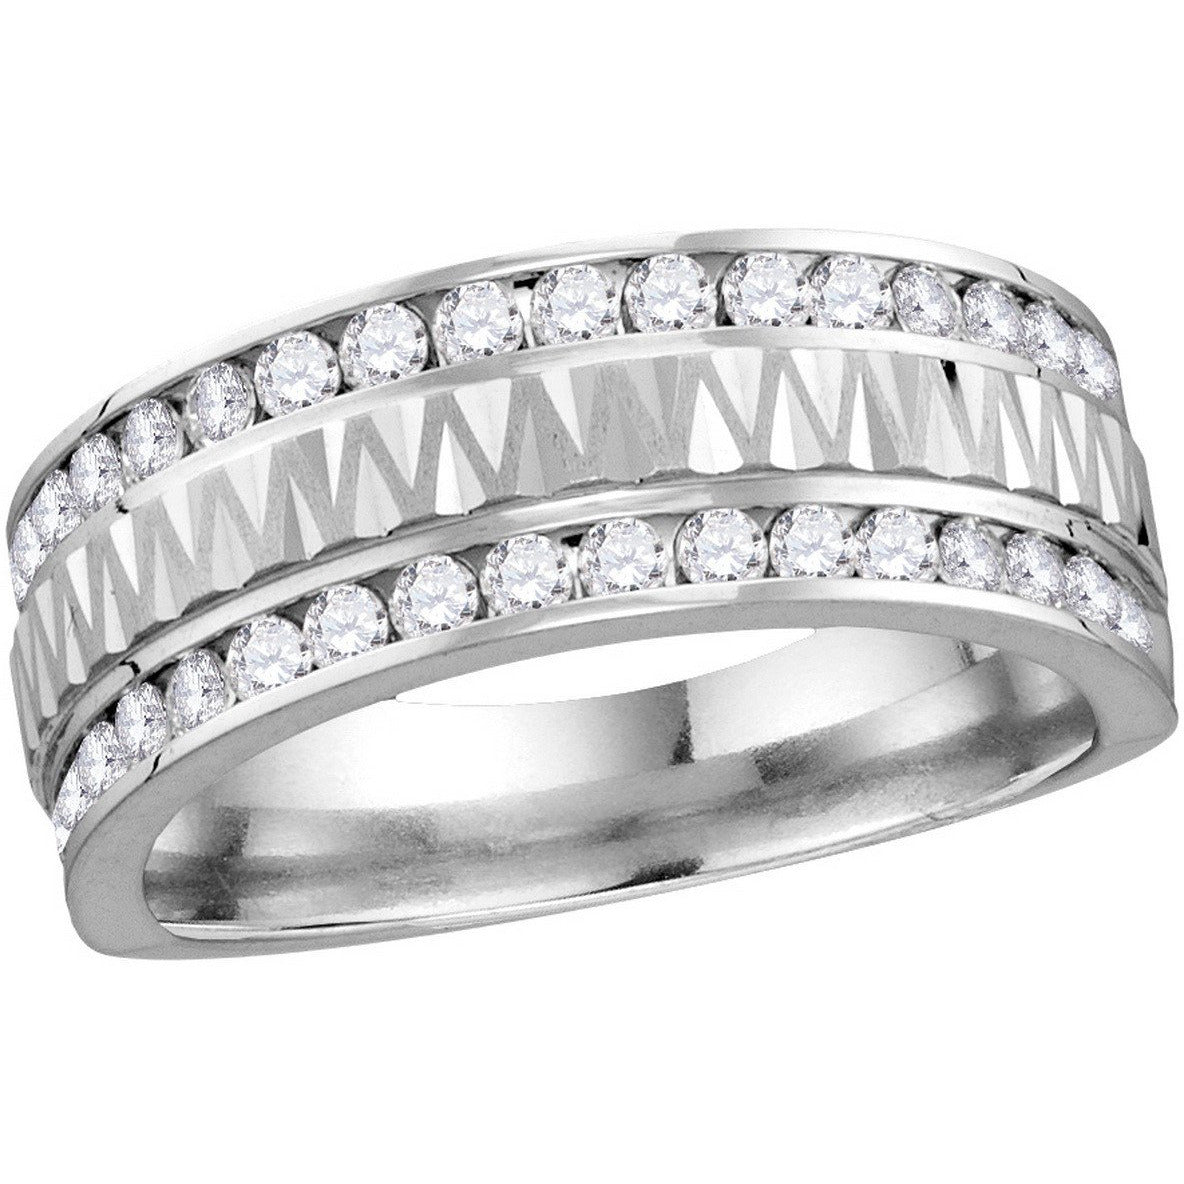 14kt White Gold Mens Round Diamond Grecco Band Wedding Anniversary Ring 1.00 Cttw 114550 - shirin-diamonds